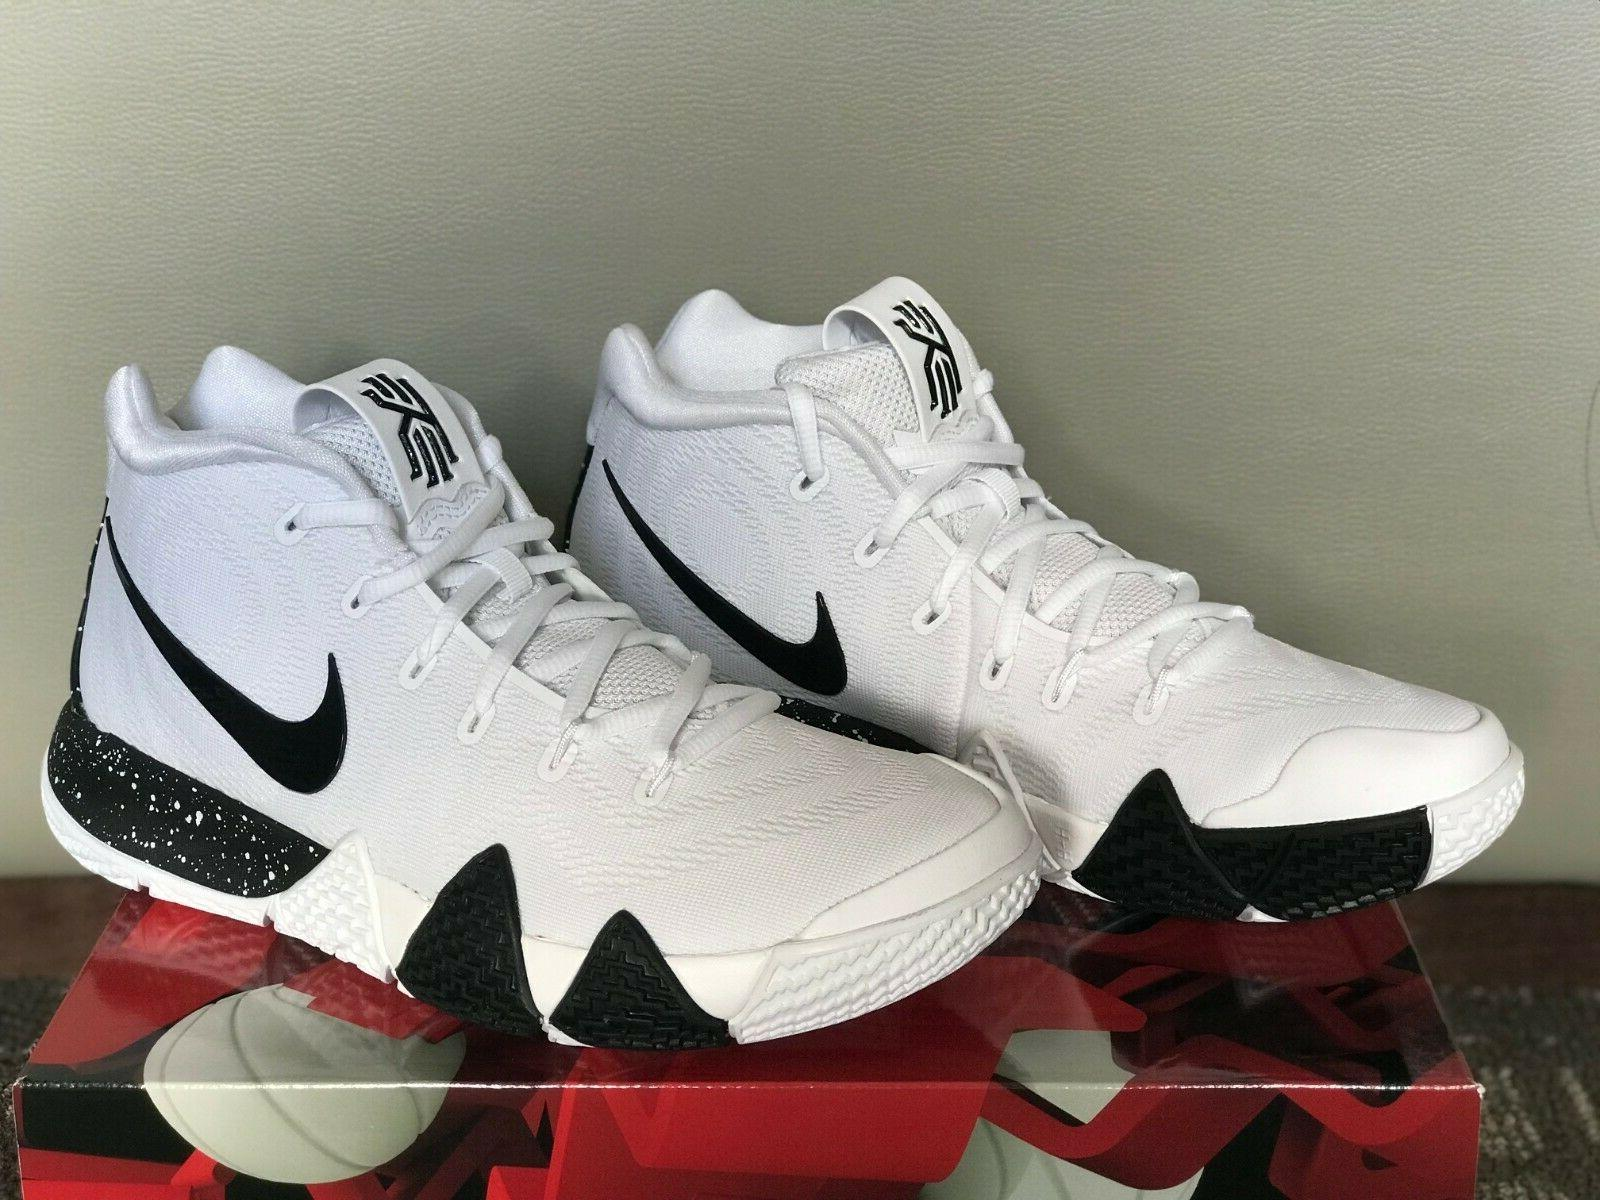 New Nike Kyrie TB 5 Basketball Shoes Kobe Jordan